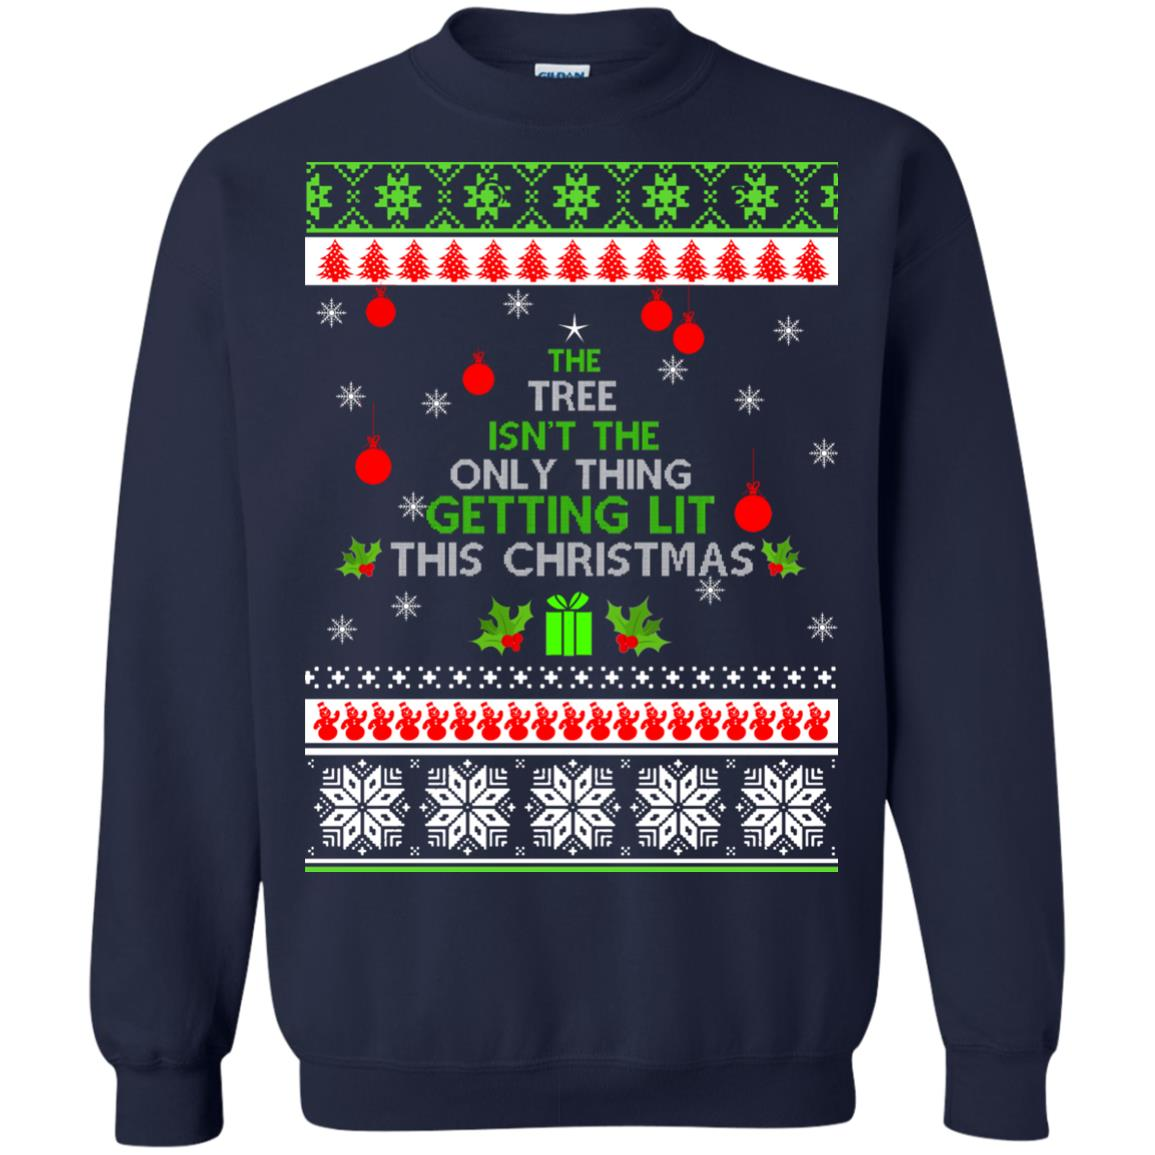 image 5415 - The Tree Isn't The Only Thing Getting Lit This Christmas Sweater, Long Sleeve